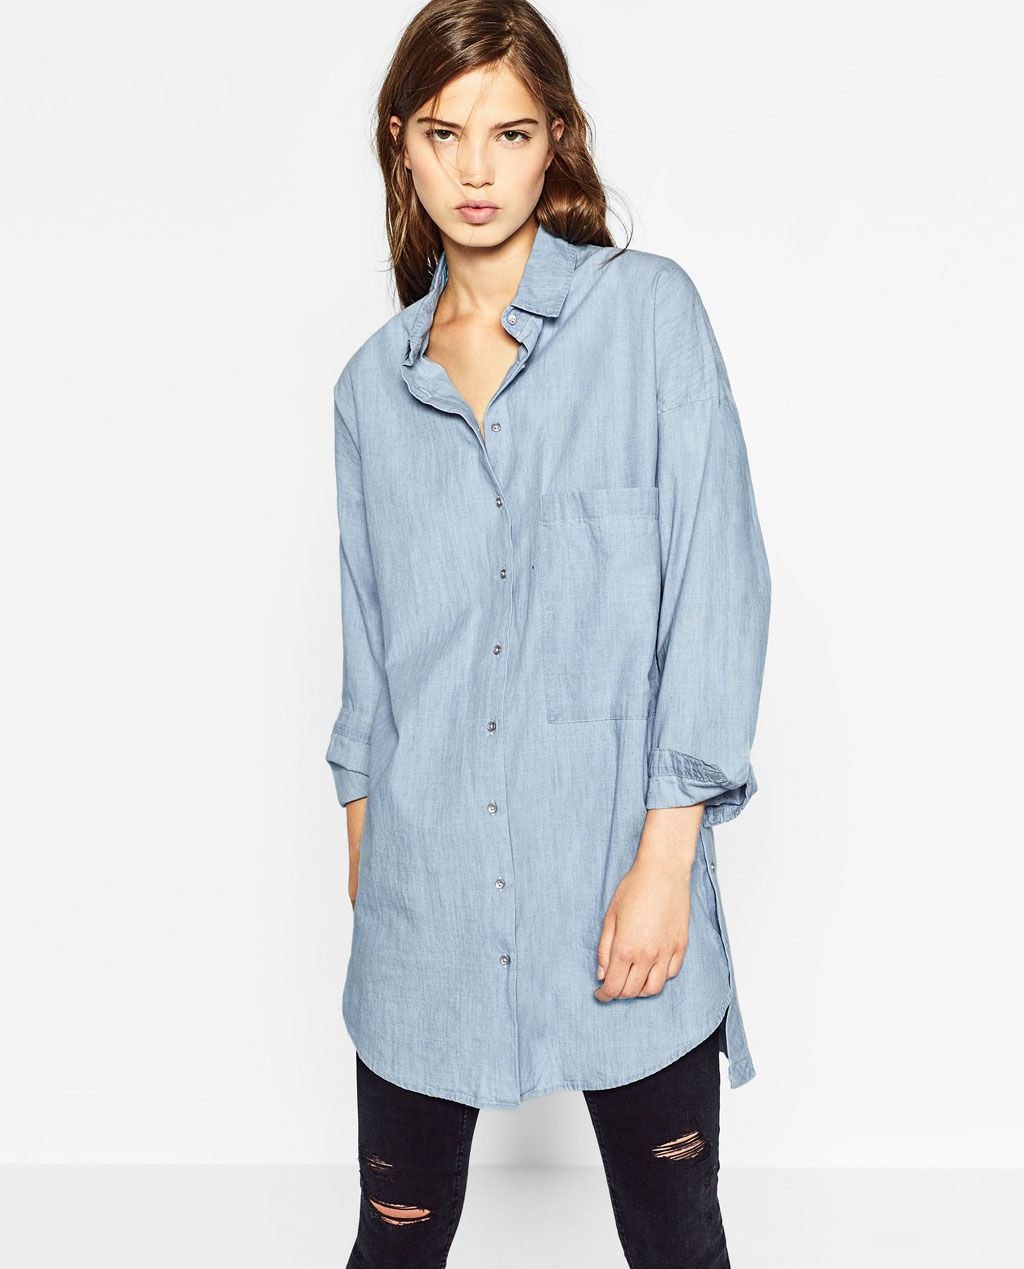 zara femme chemise en jean avec broderie au dos chemise broderie pinterest zara femme. Black Bedroom Furniture Sets. Home Design Ideas